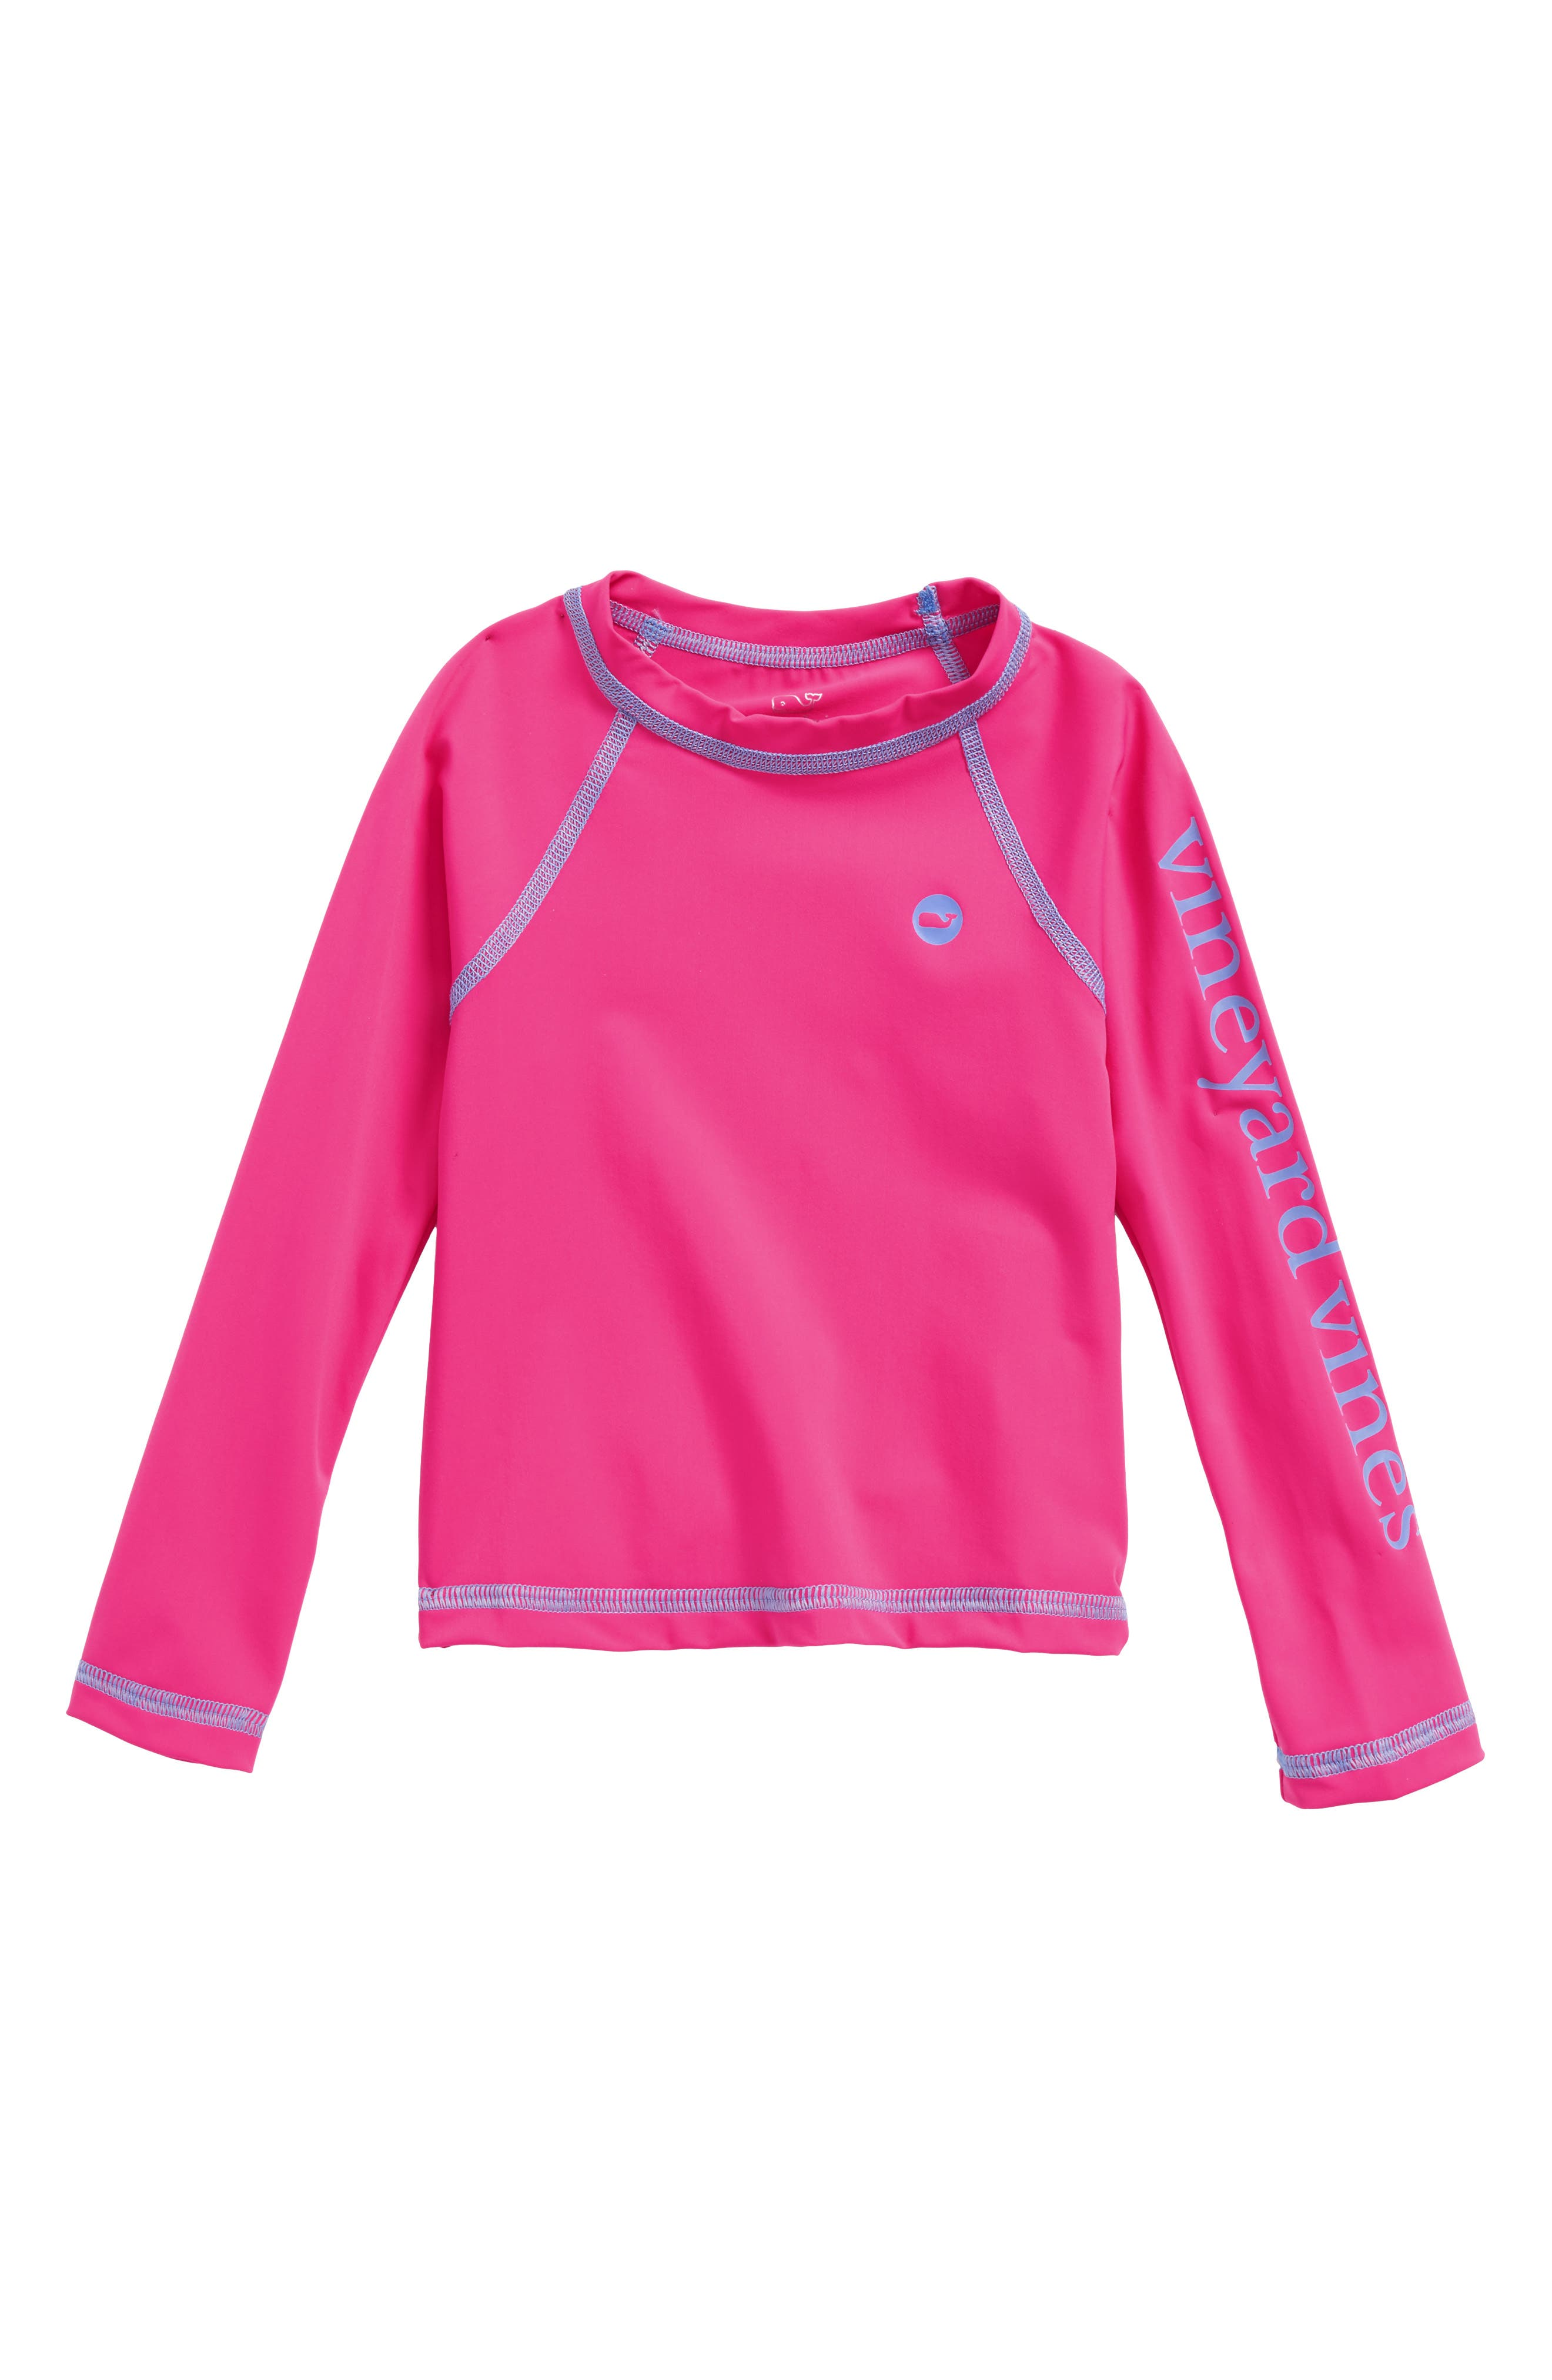 Alternate Image 1 Selected - vineyard vines Solid Long Sleeve Rashguard (Toddler Girls)